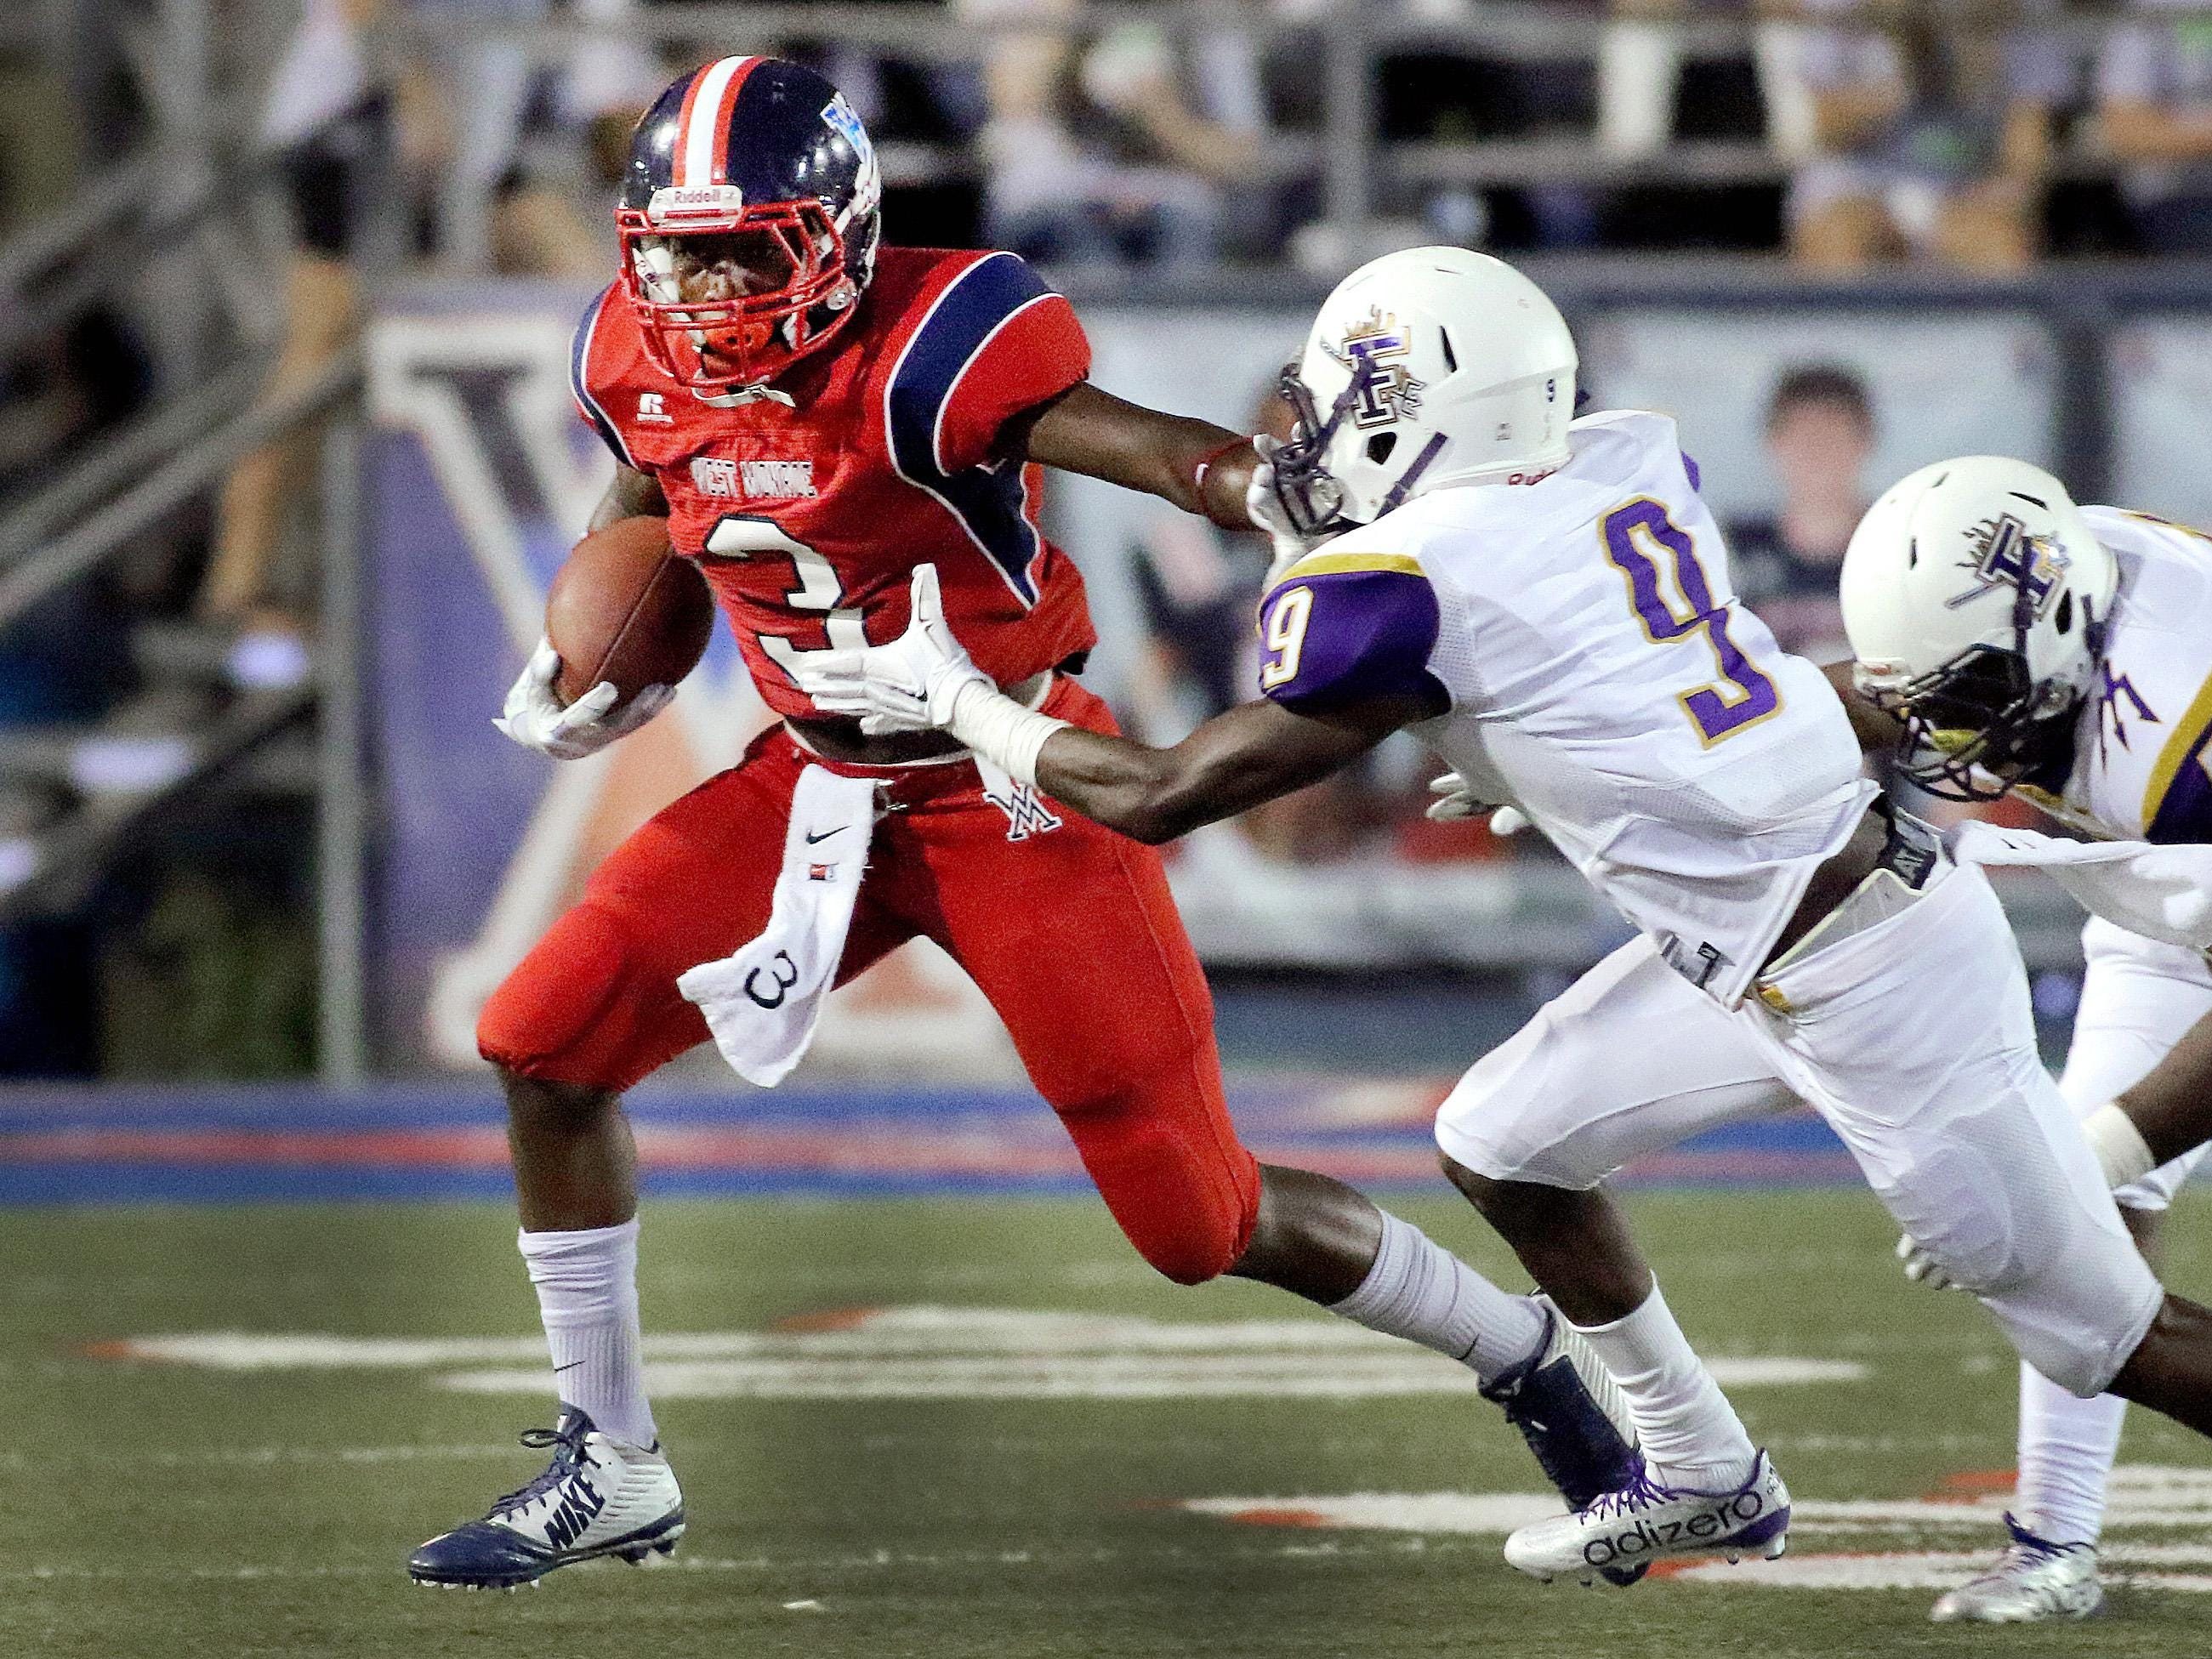 West Monroe RB Trey Coleman (3) stiff-arms Franklinton defender Martavious James (9) Friday night in high school action at Don Shows Field at Rebel Stadium.